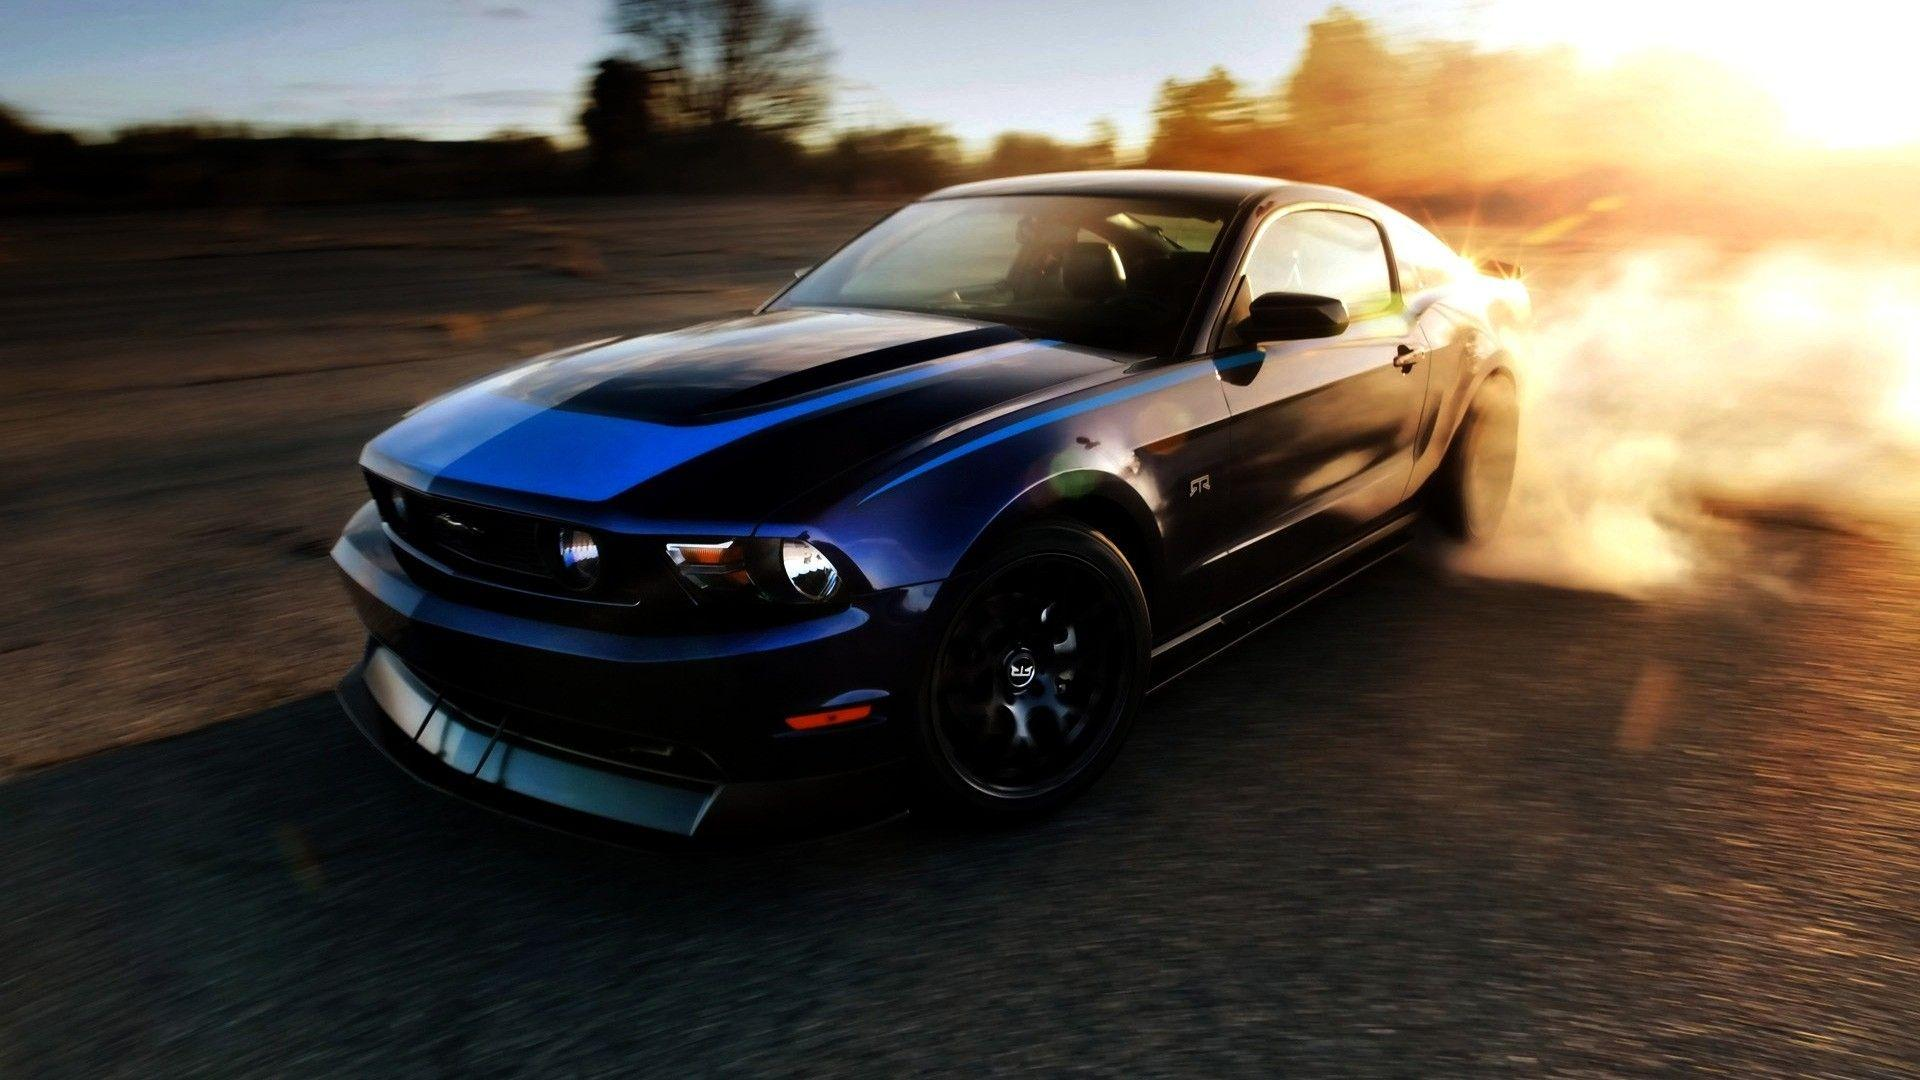 Muscle Cars Ford >> 2015 Ford Mustang Shelby Wallpapers - Wallpaper Cave